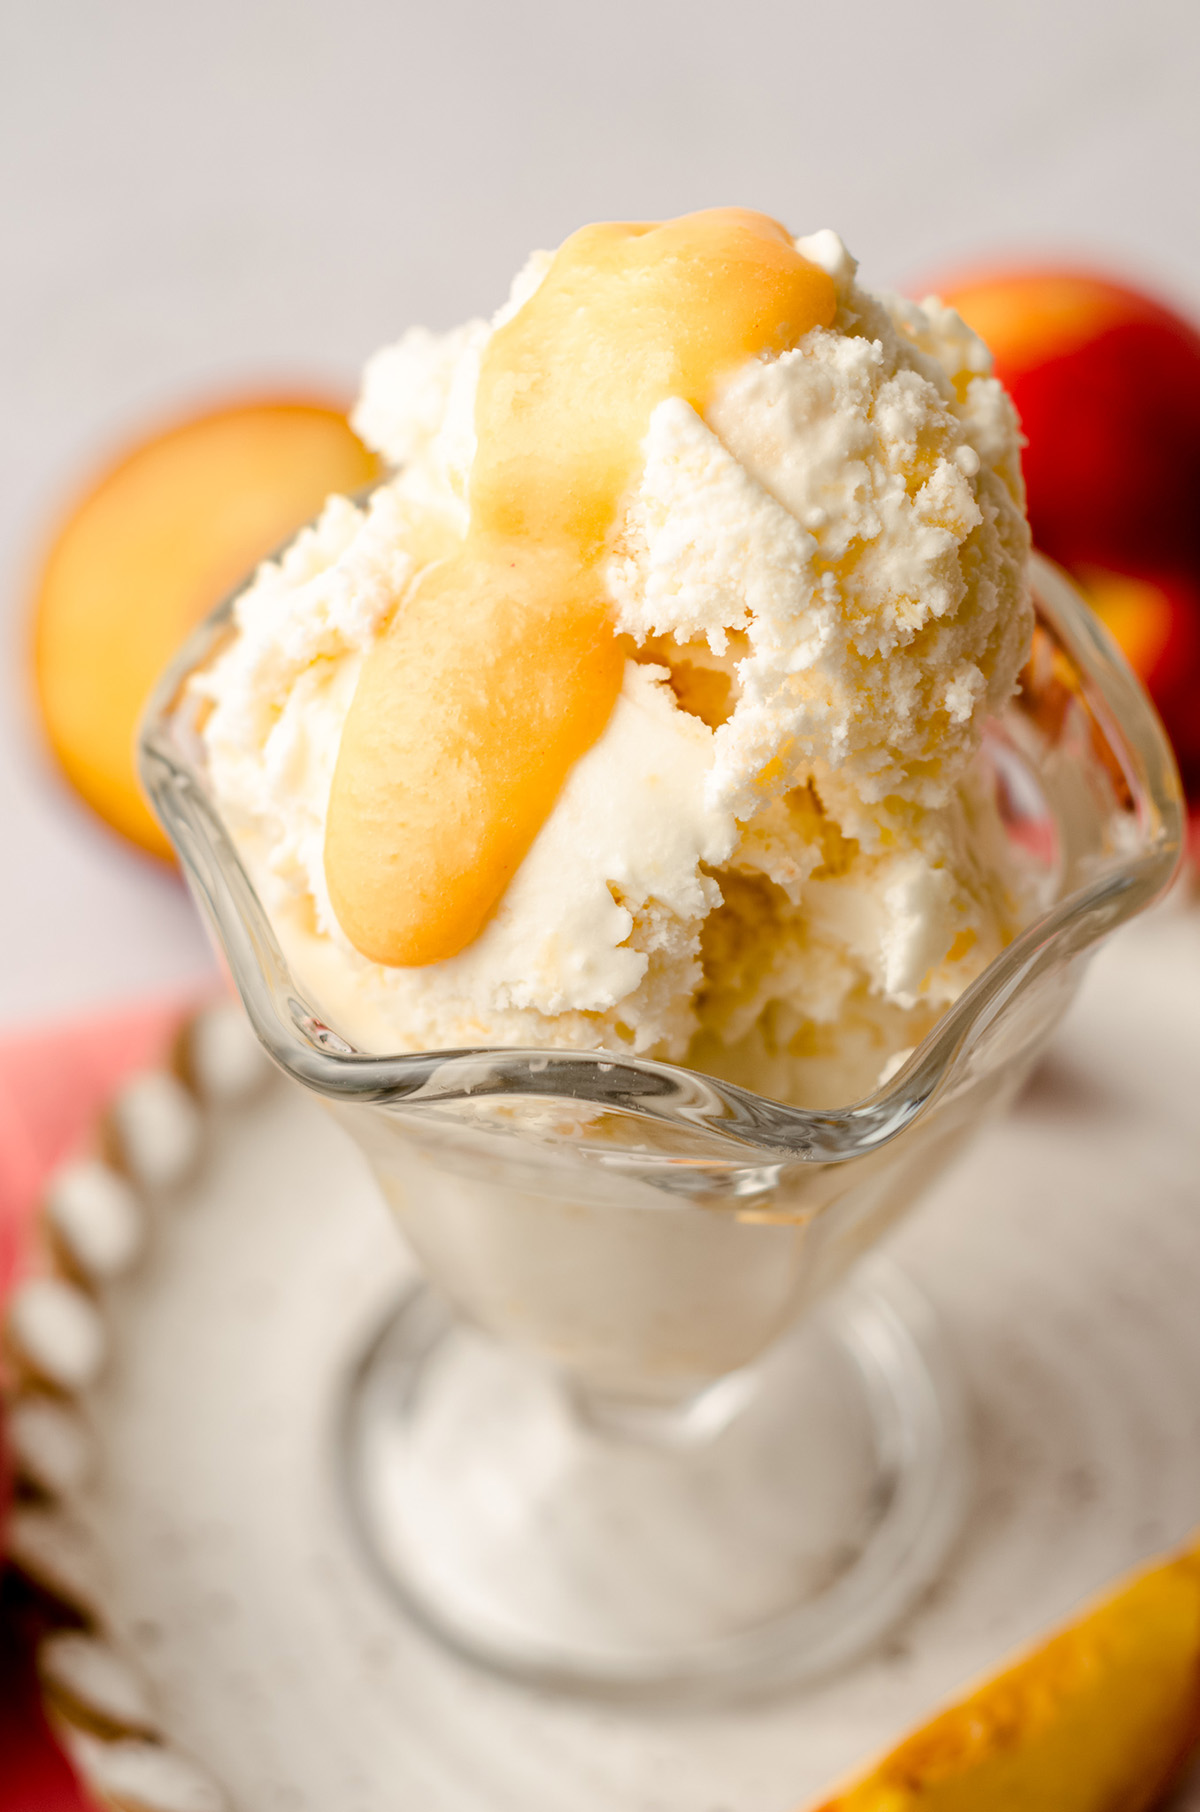 homemade peach ice cream in a glass dish with peach curd on top